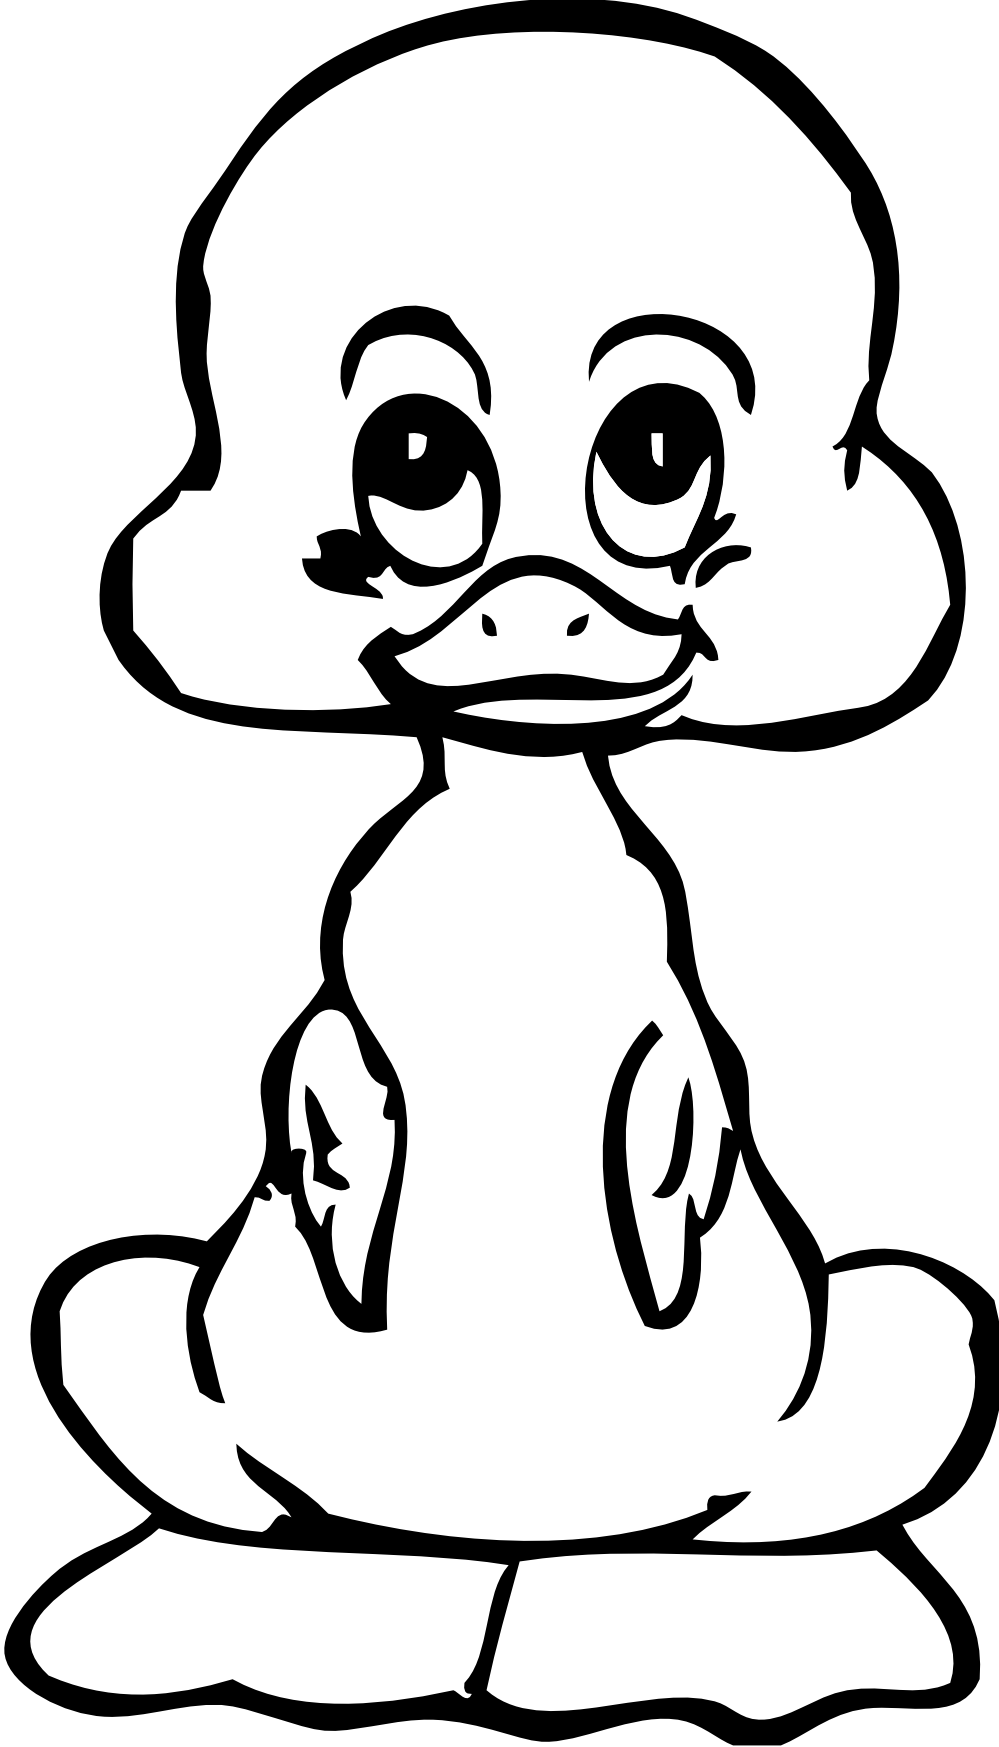 Free Black And White Duck Clipart, Download Free Clip Art.